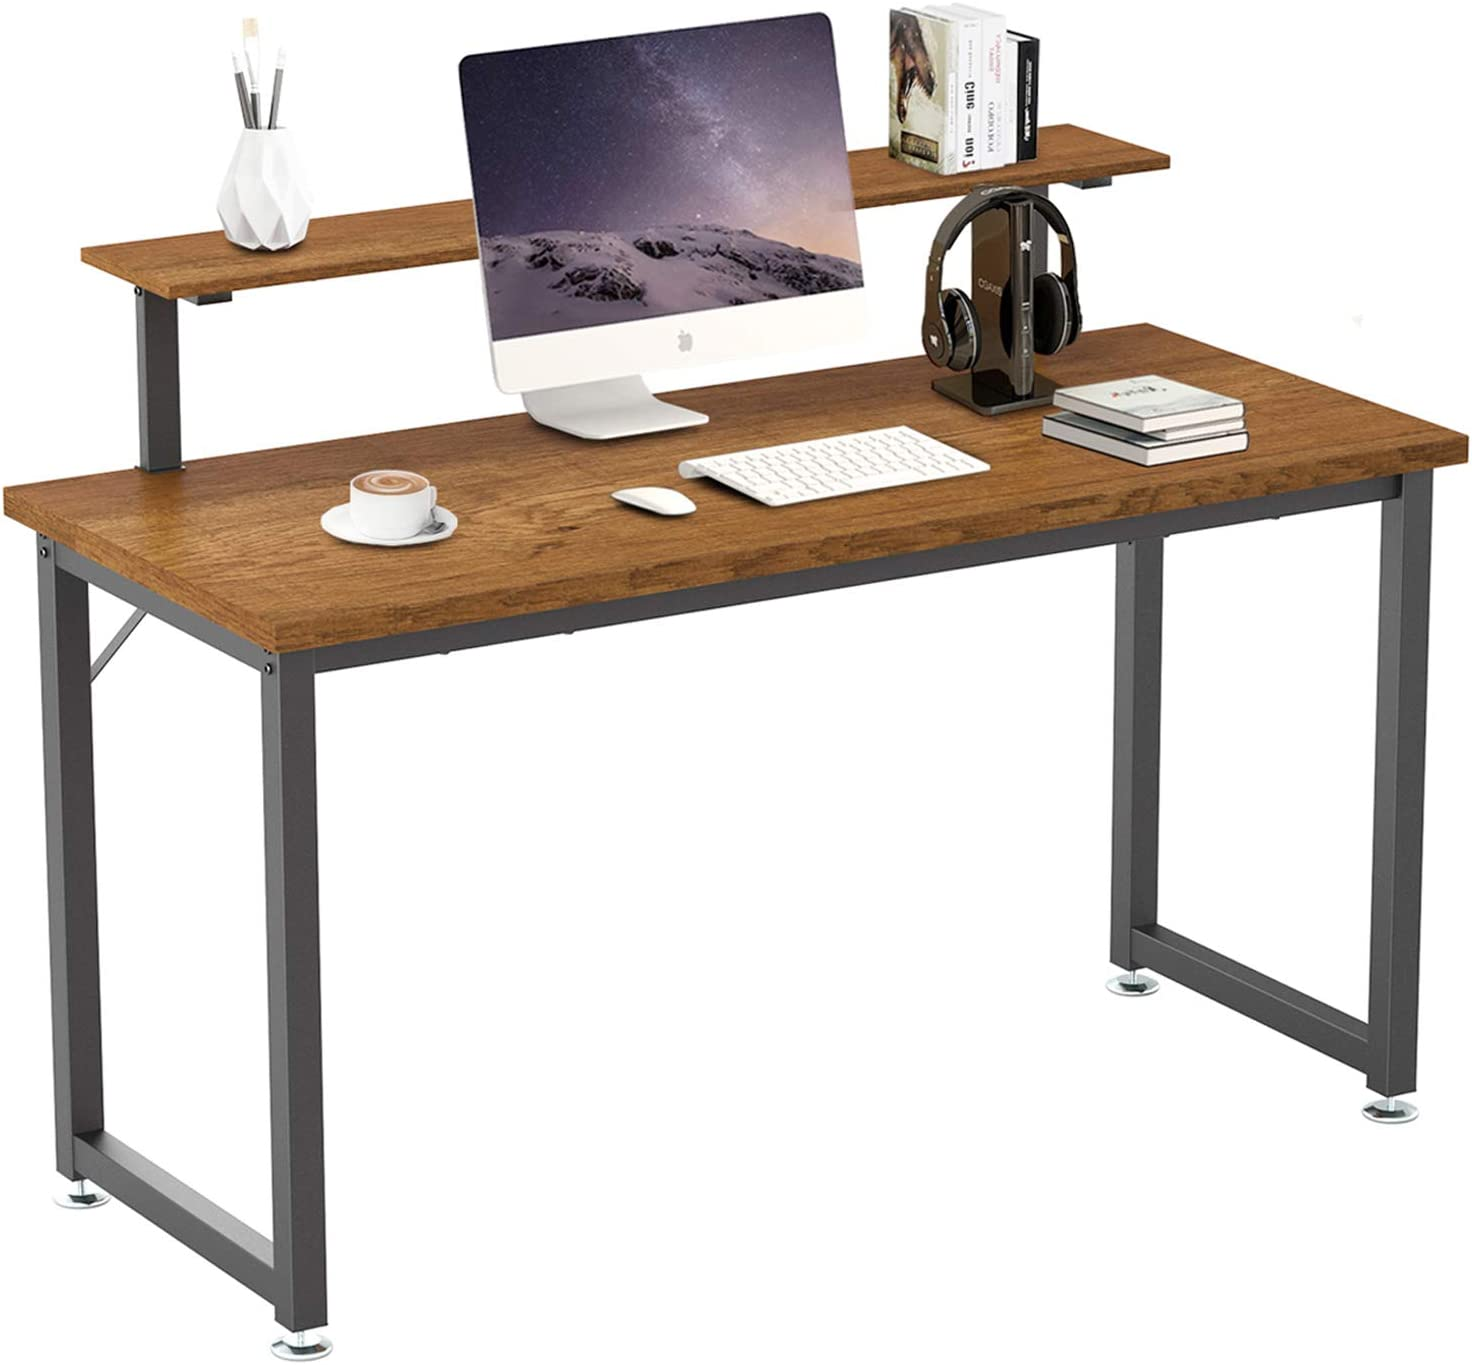 Computer Desk, 55'' Home Office Desk with Monitor Shelf, Work Desk for Home Office, Wood Large and Modern Style, Best Choice for Writing Work and Study